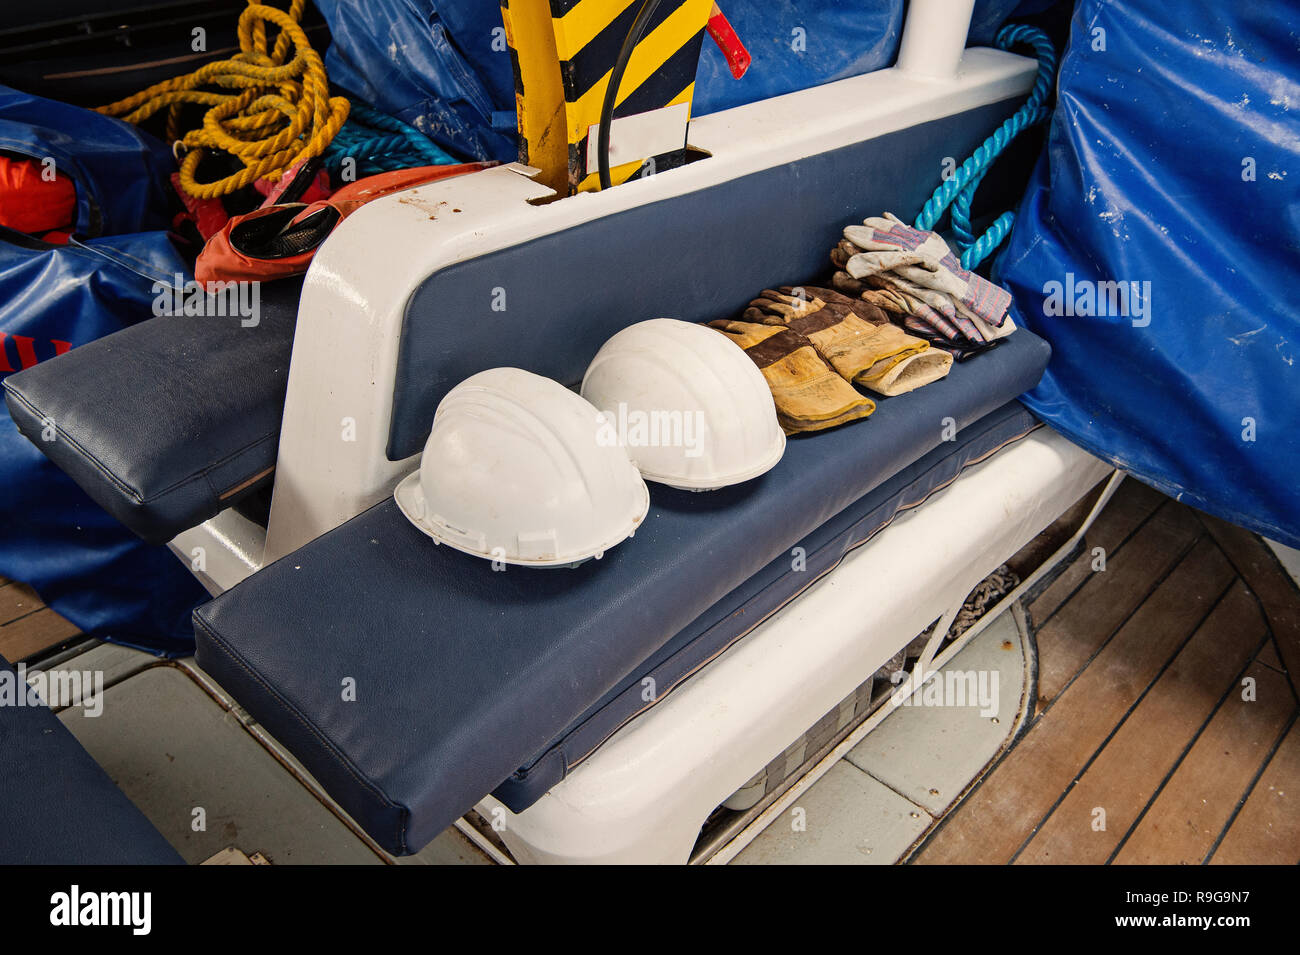 Gloves and helmets on grey seat background in boca de valeria, brazil. Construction, industry, professional workwear and equipment. Safety and protection concept. - Stock Image